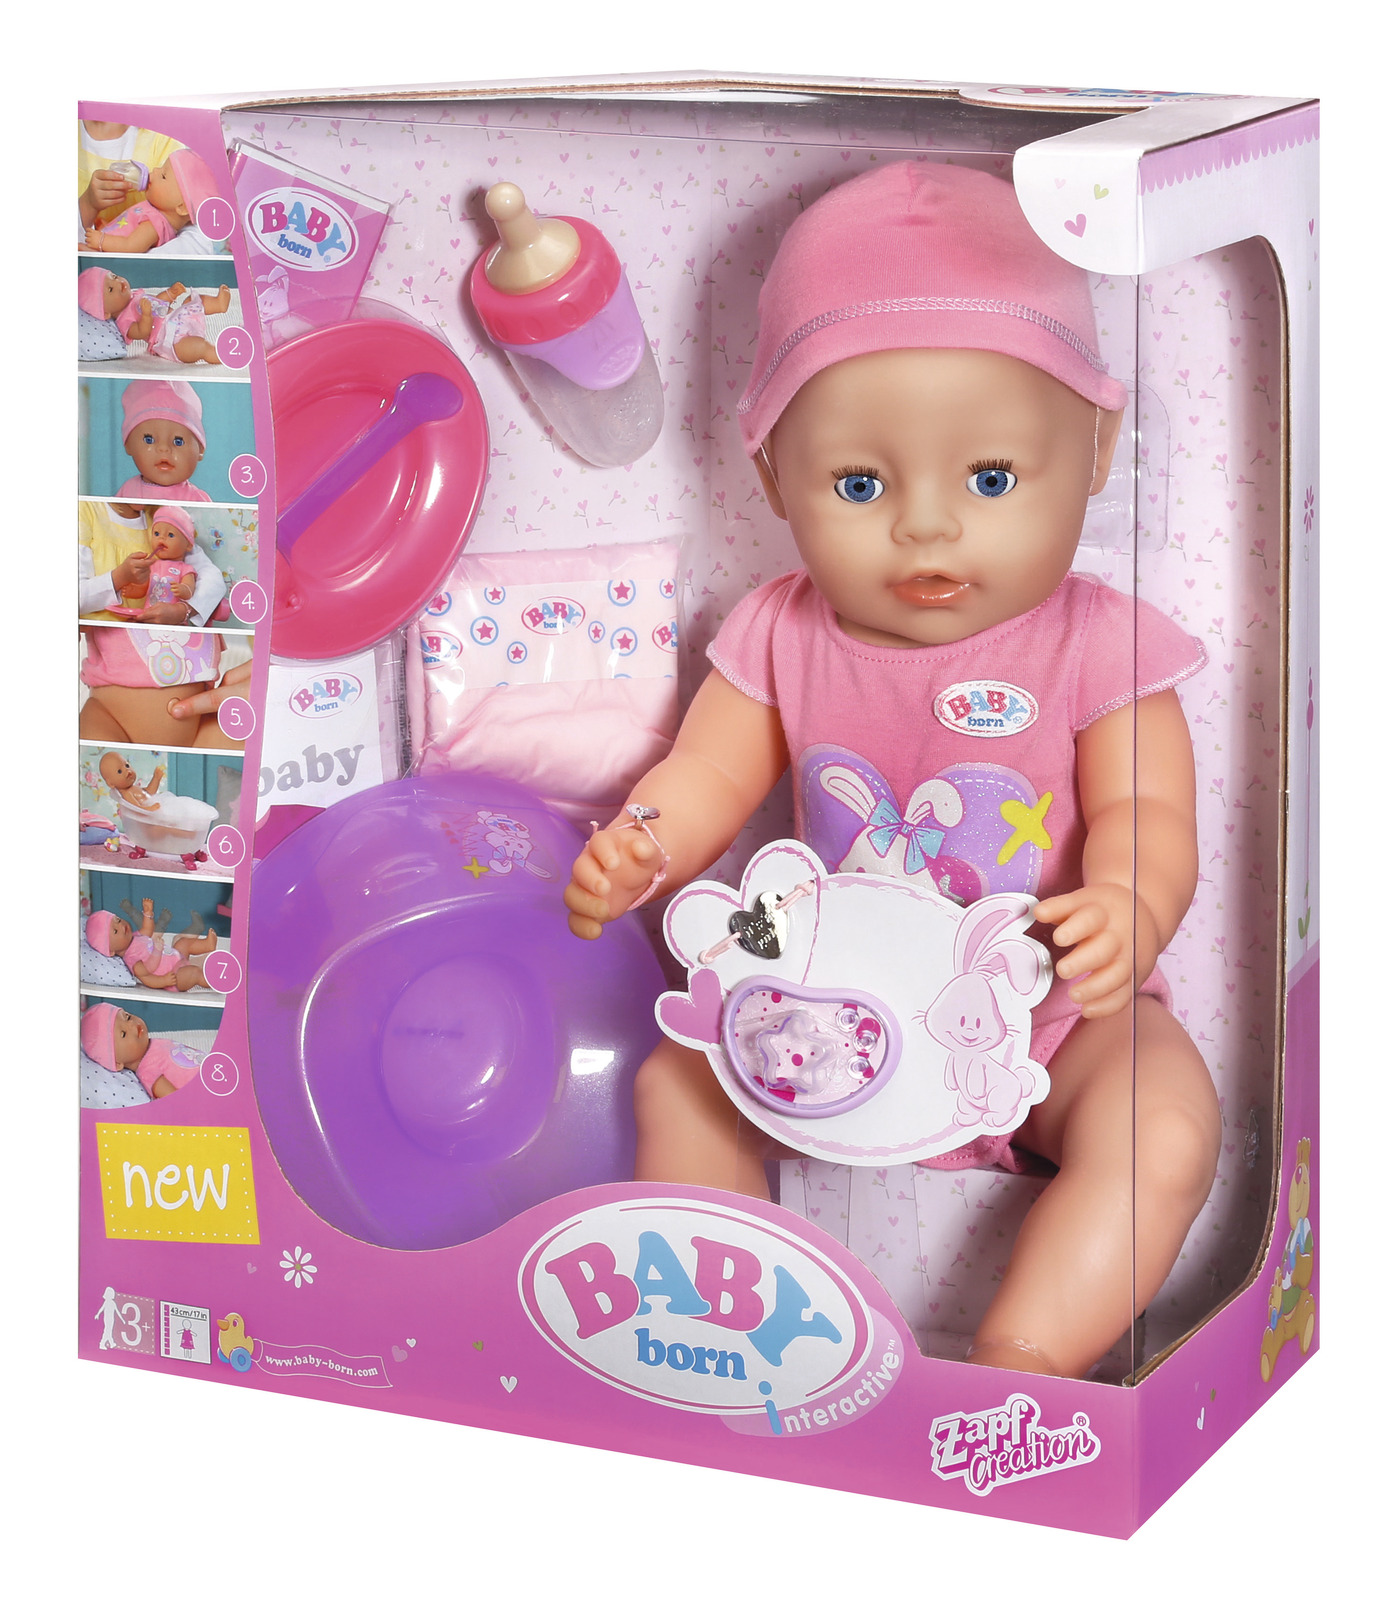 Baby Born Interactive Doll image